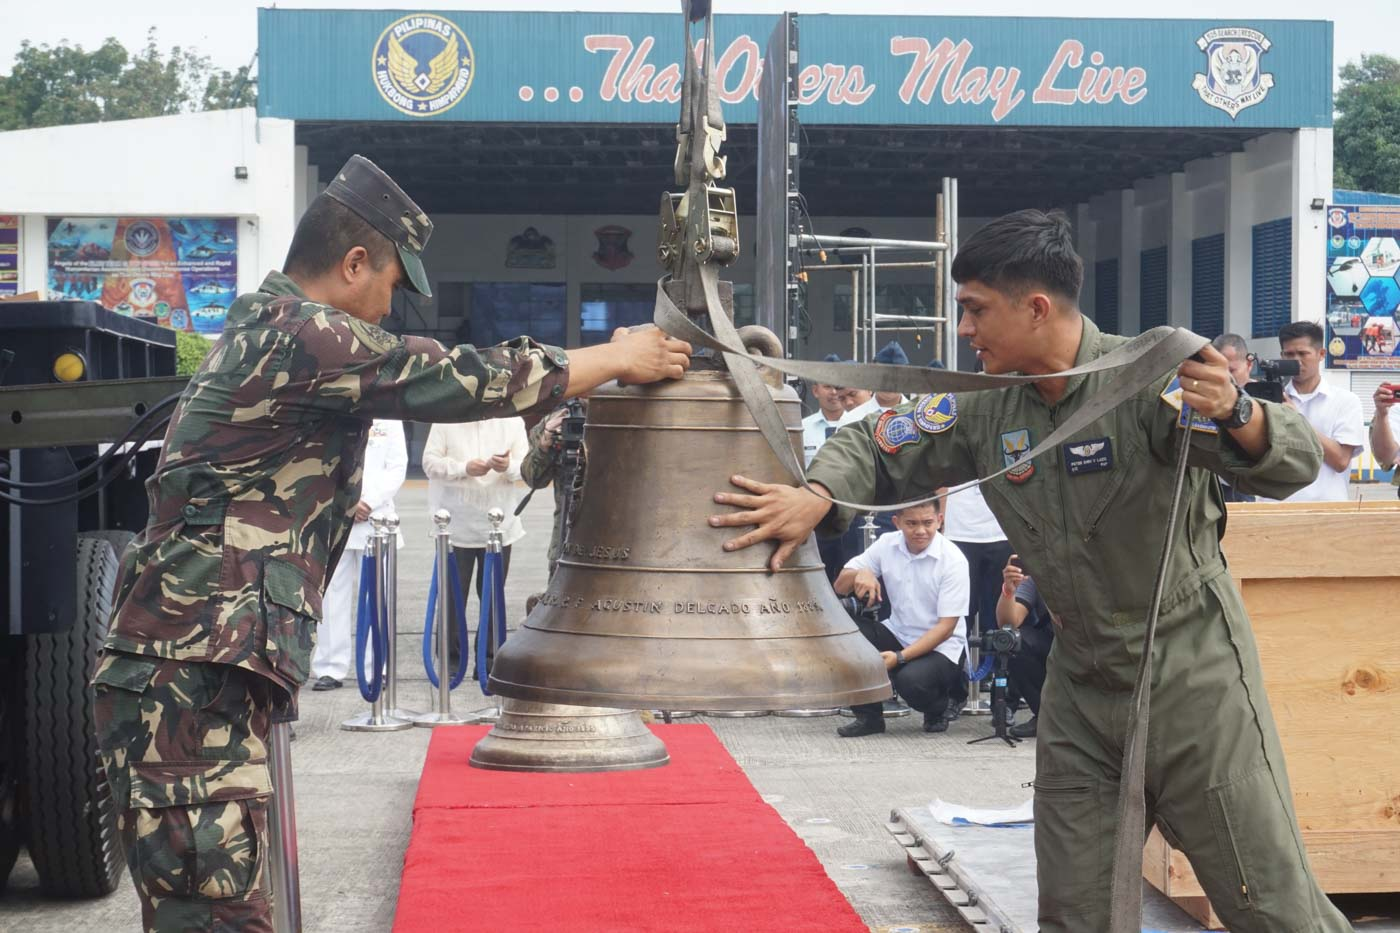 WAR SPOILS. The Balangiga Bells return to the Philippines 117 years after these were taken to America by US troops. Photo by Carmela Fonbuena/Rappler